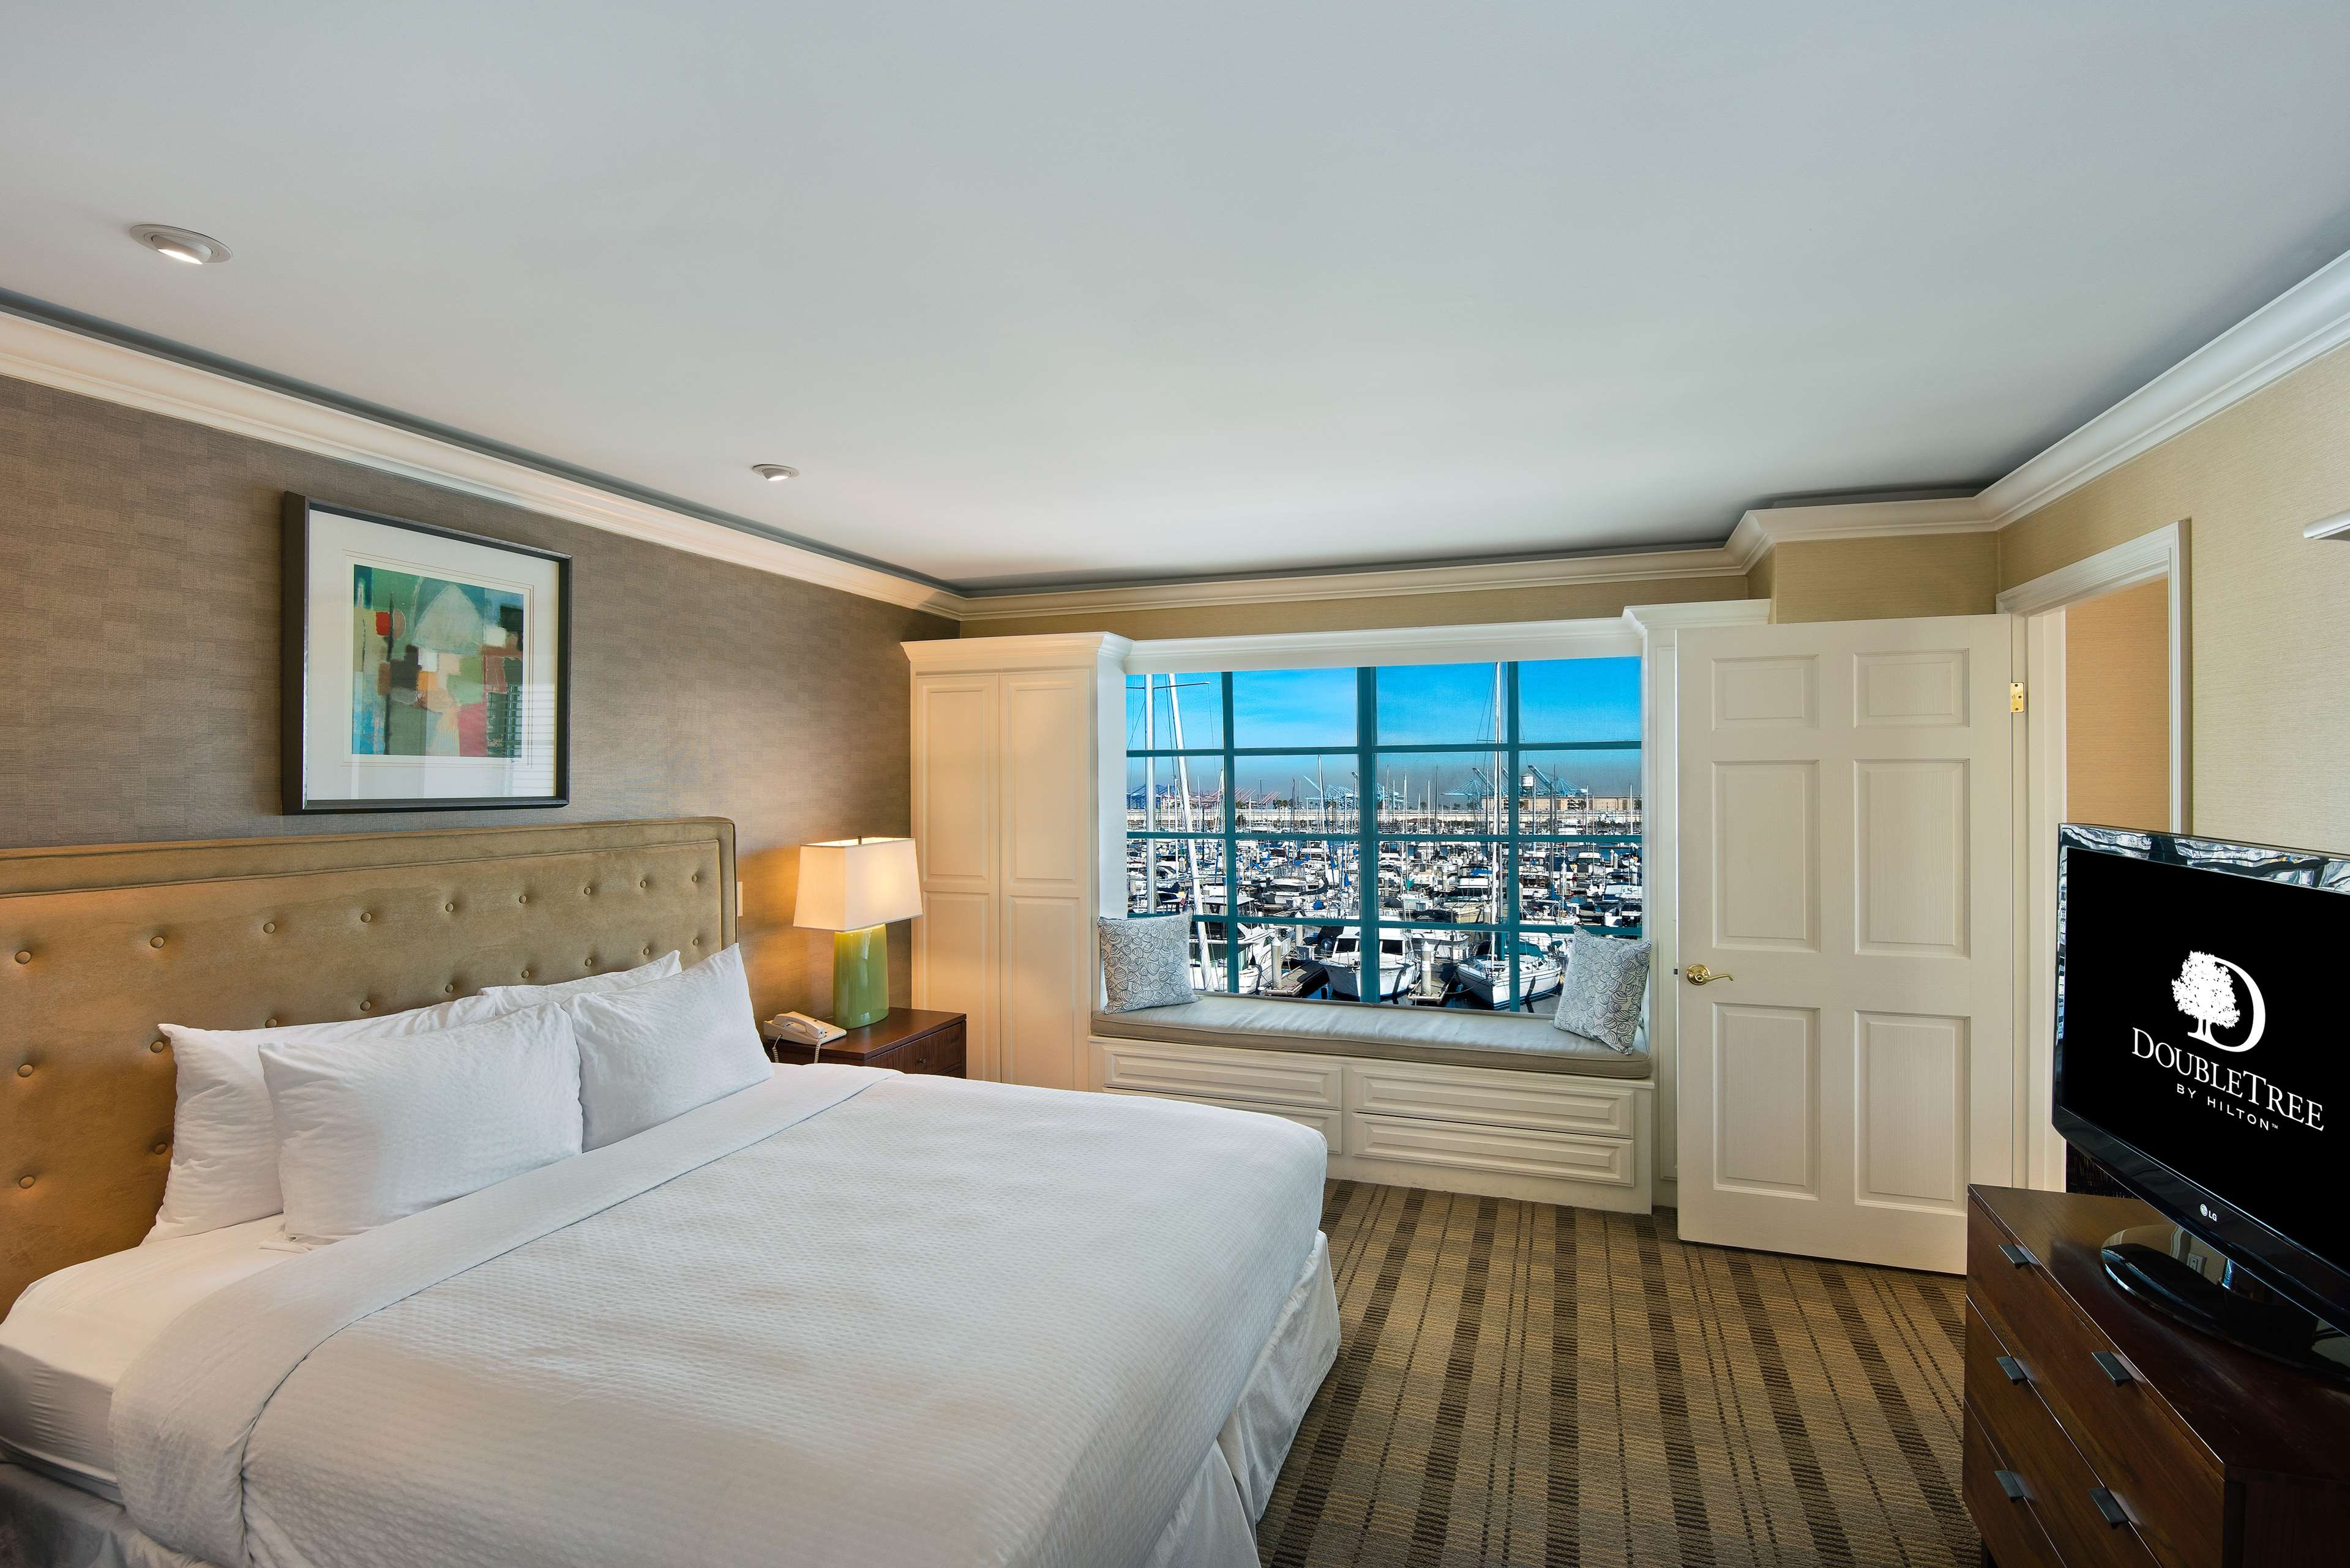 DoubleTree by Hilton Hotel San Pedro - Port of Los Angeles image 21